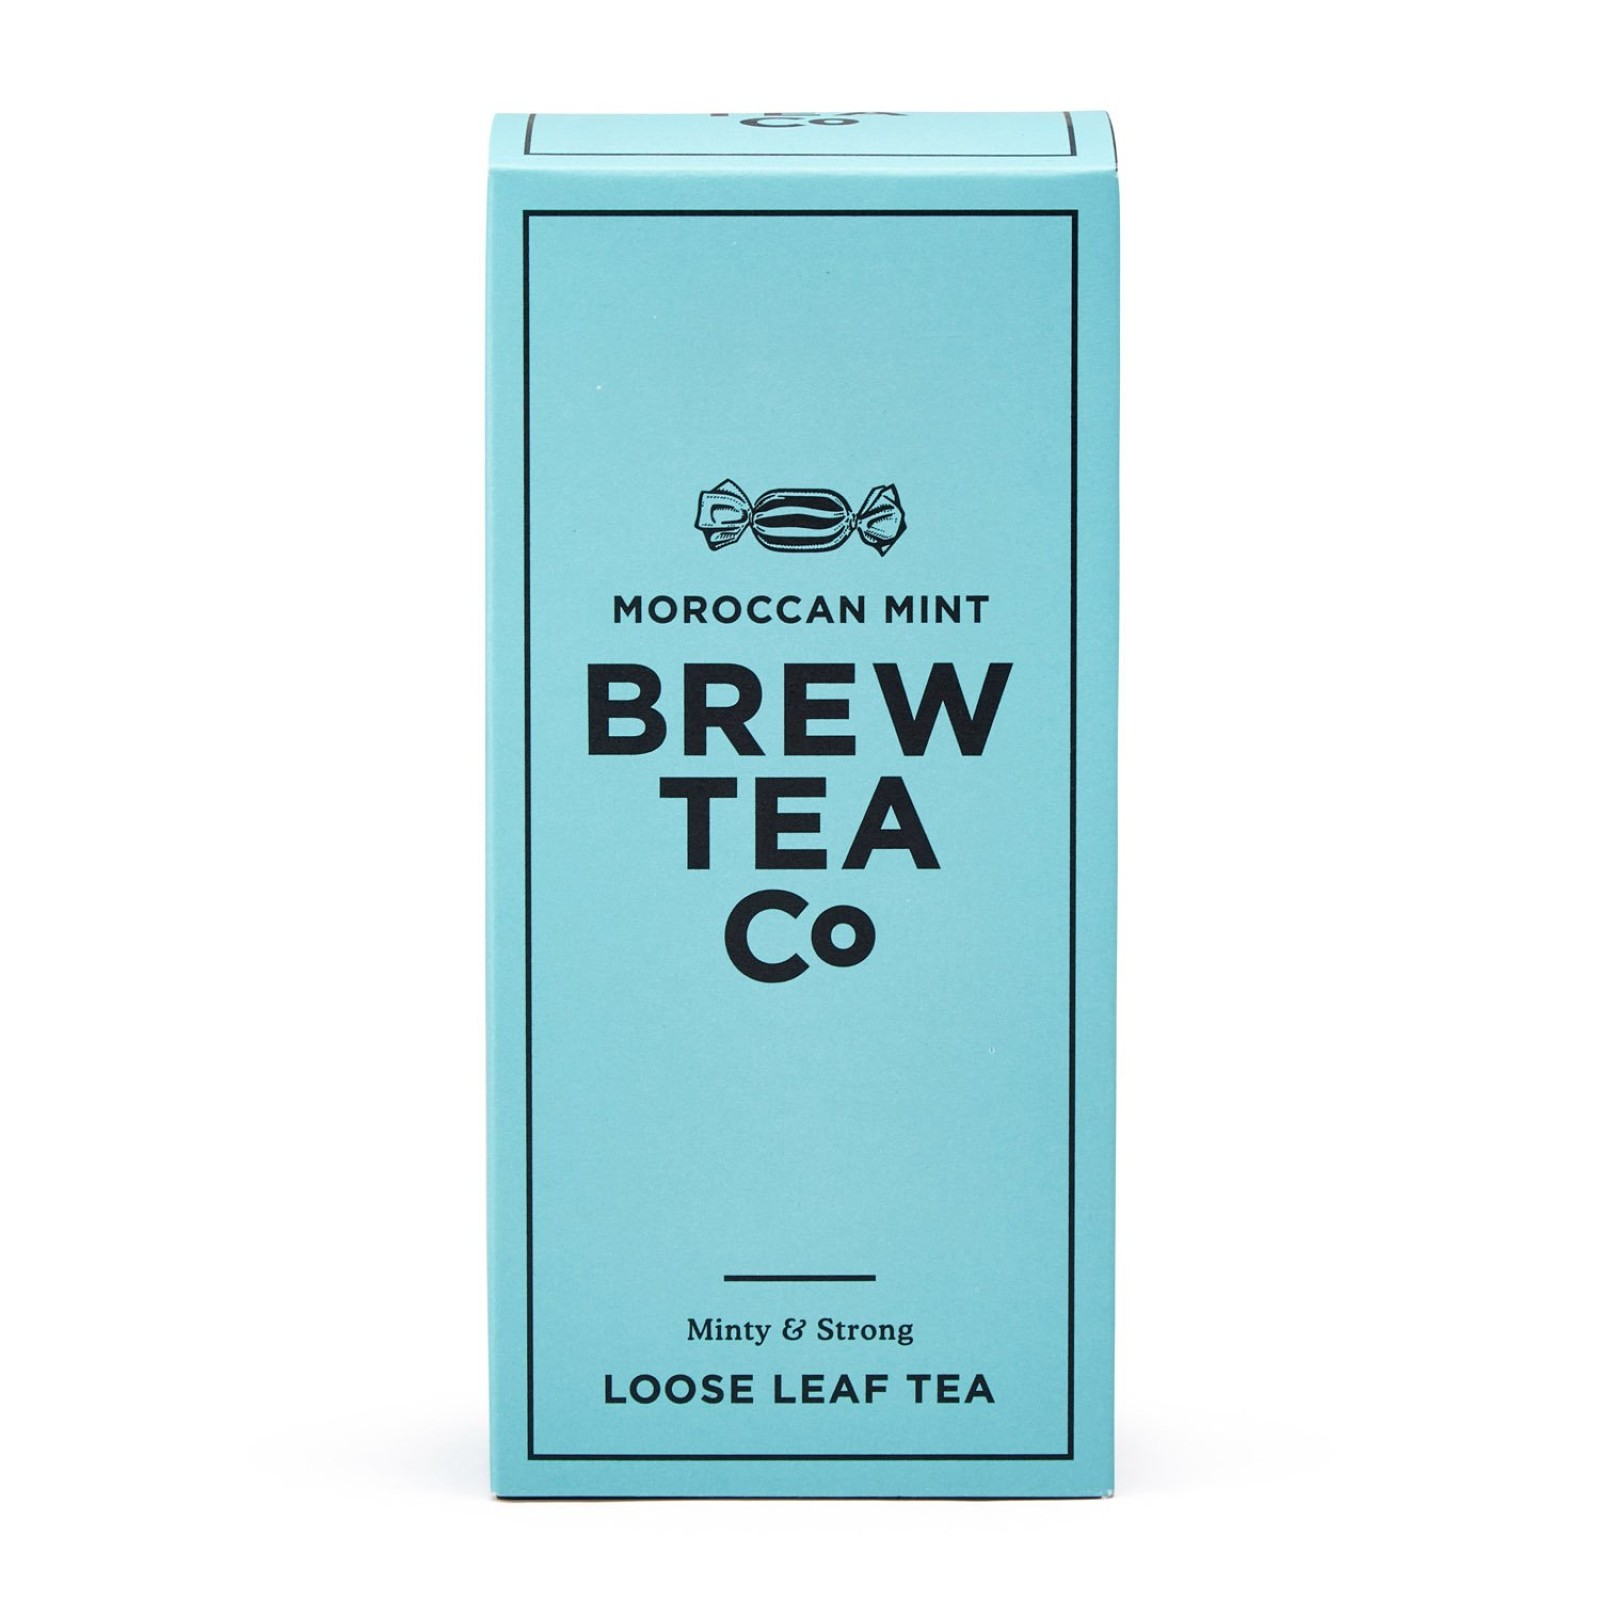 Moroccan Mint - Loose Leaf Tea 113g Brew Tea Co